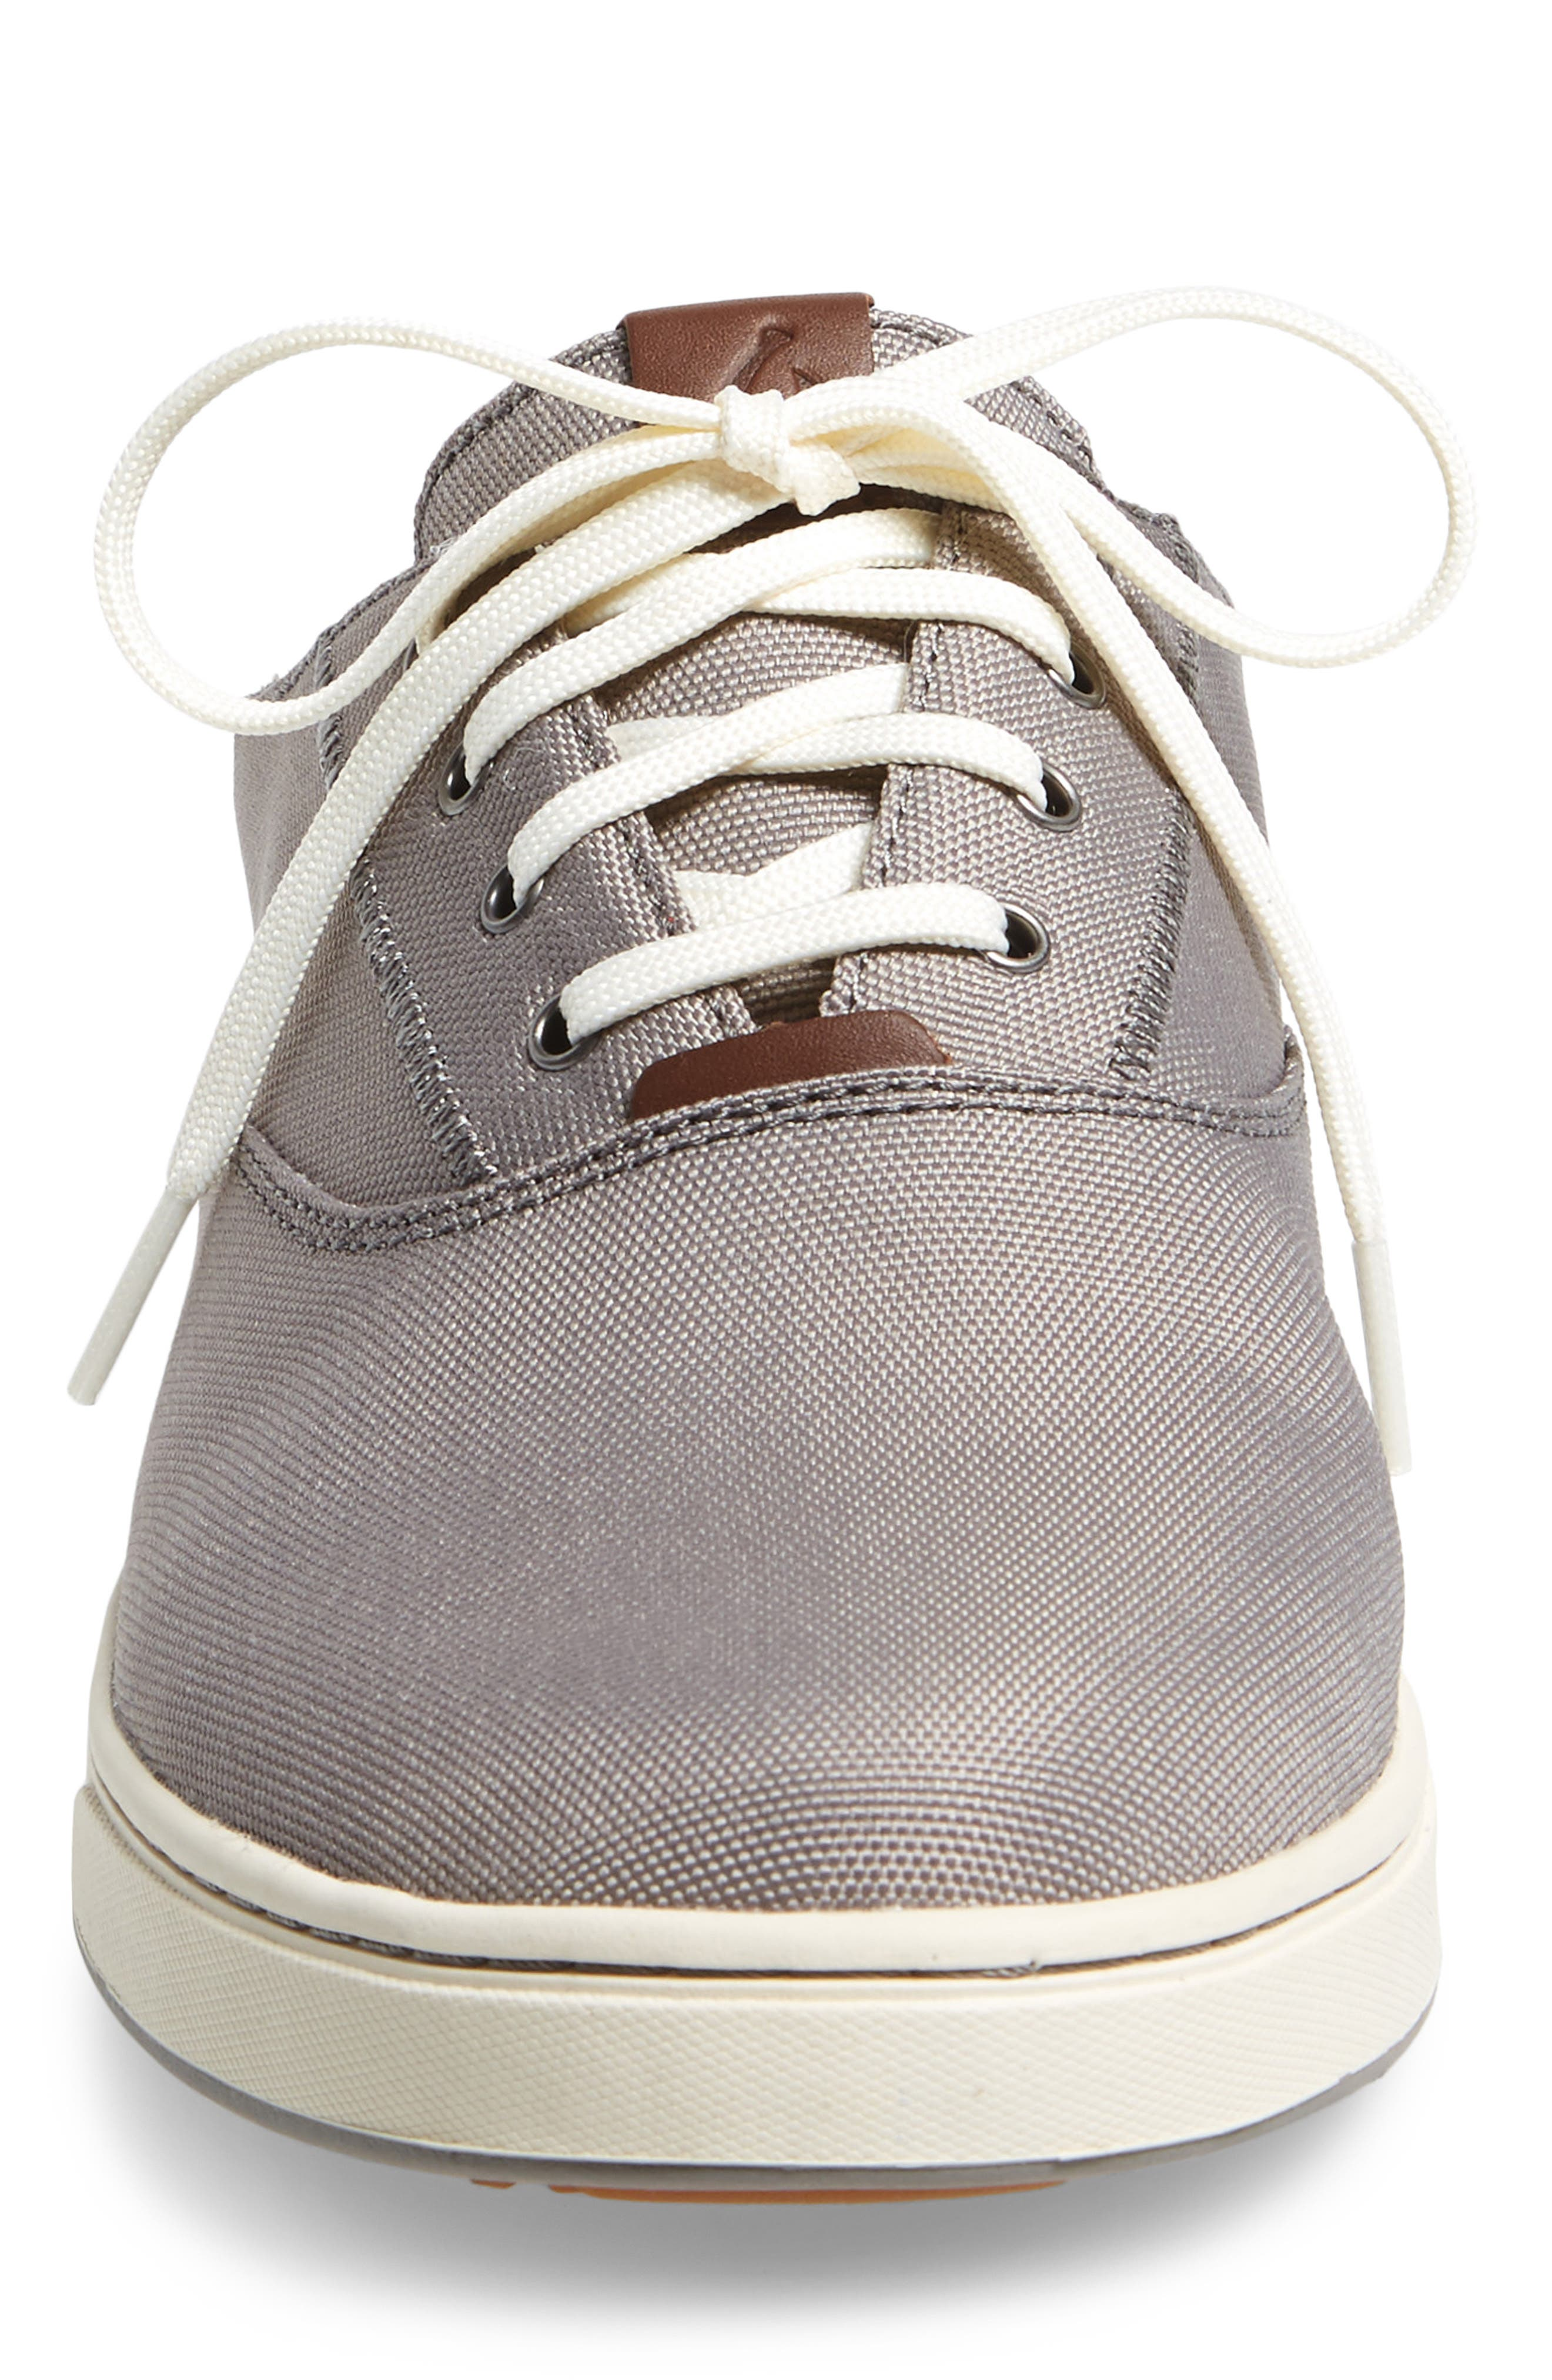 Kahu Collapsible Lace-Up Sneaker,                             Alternate thumbnail 5, color,                             Fog/ Off White